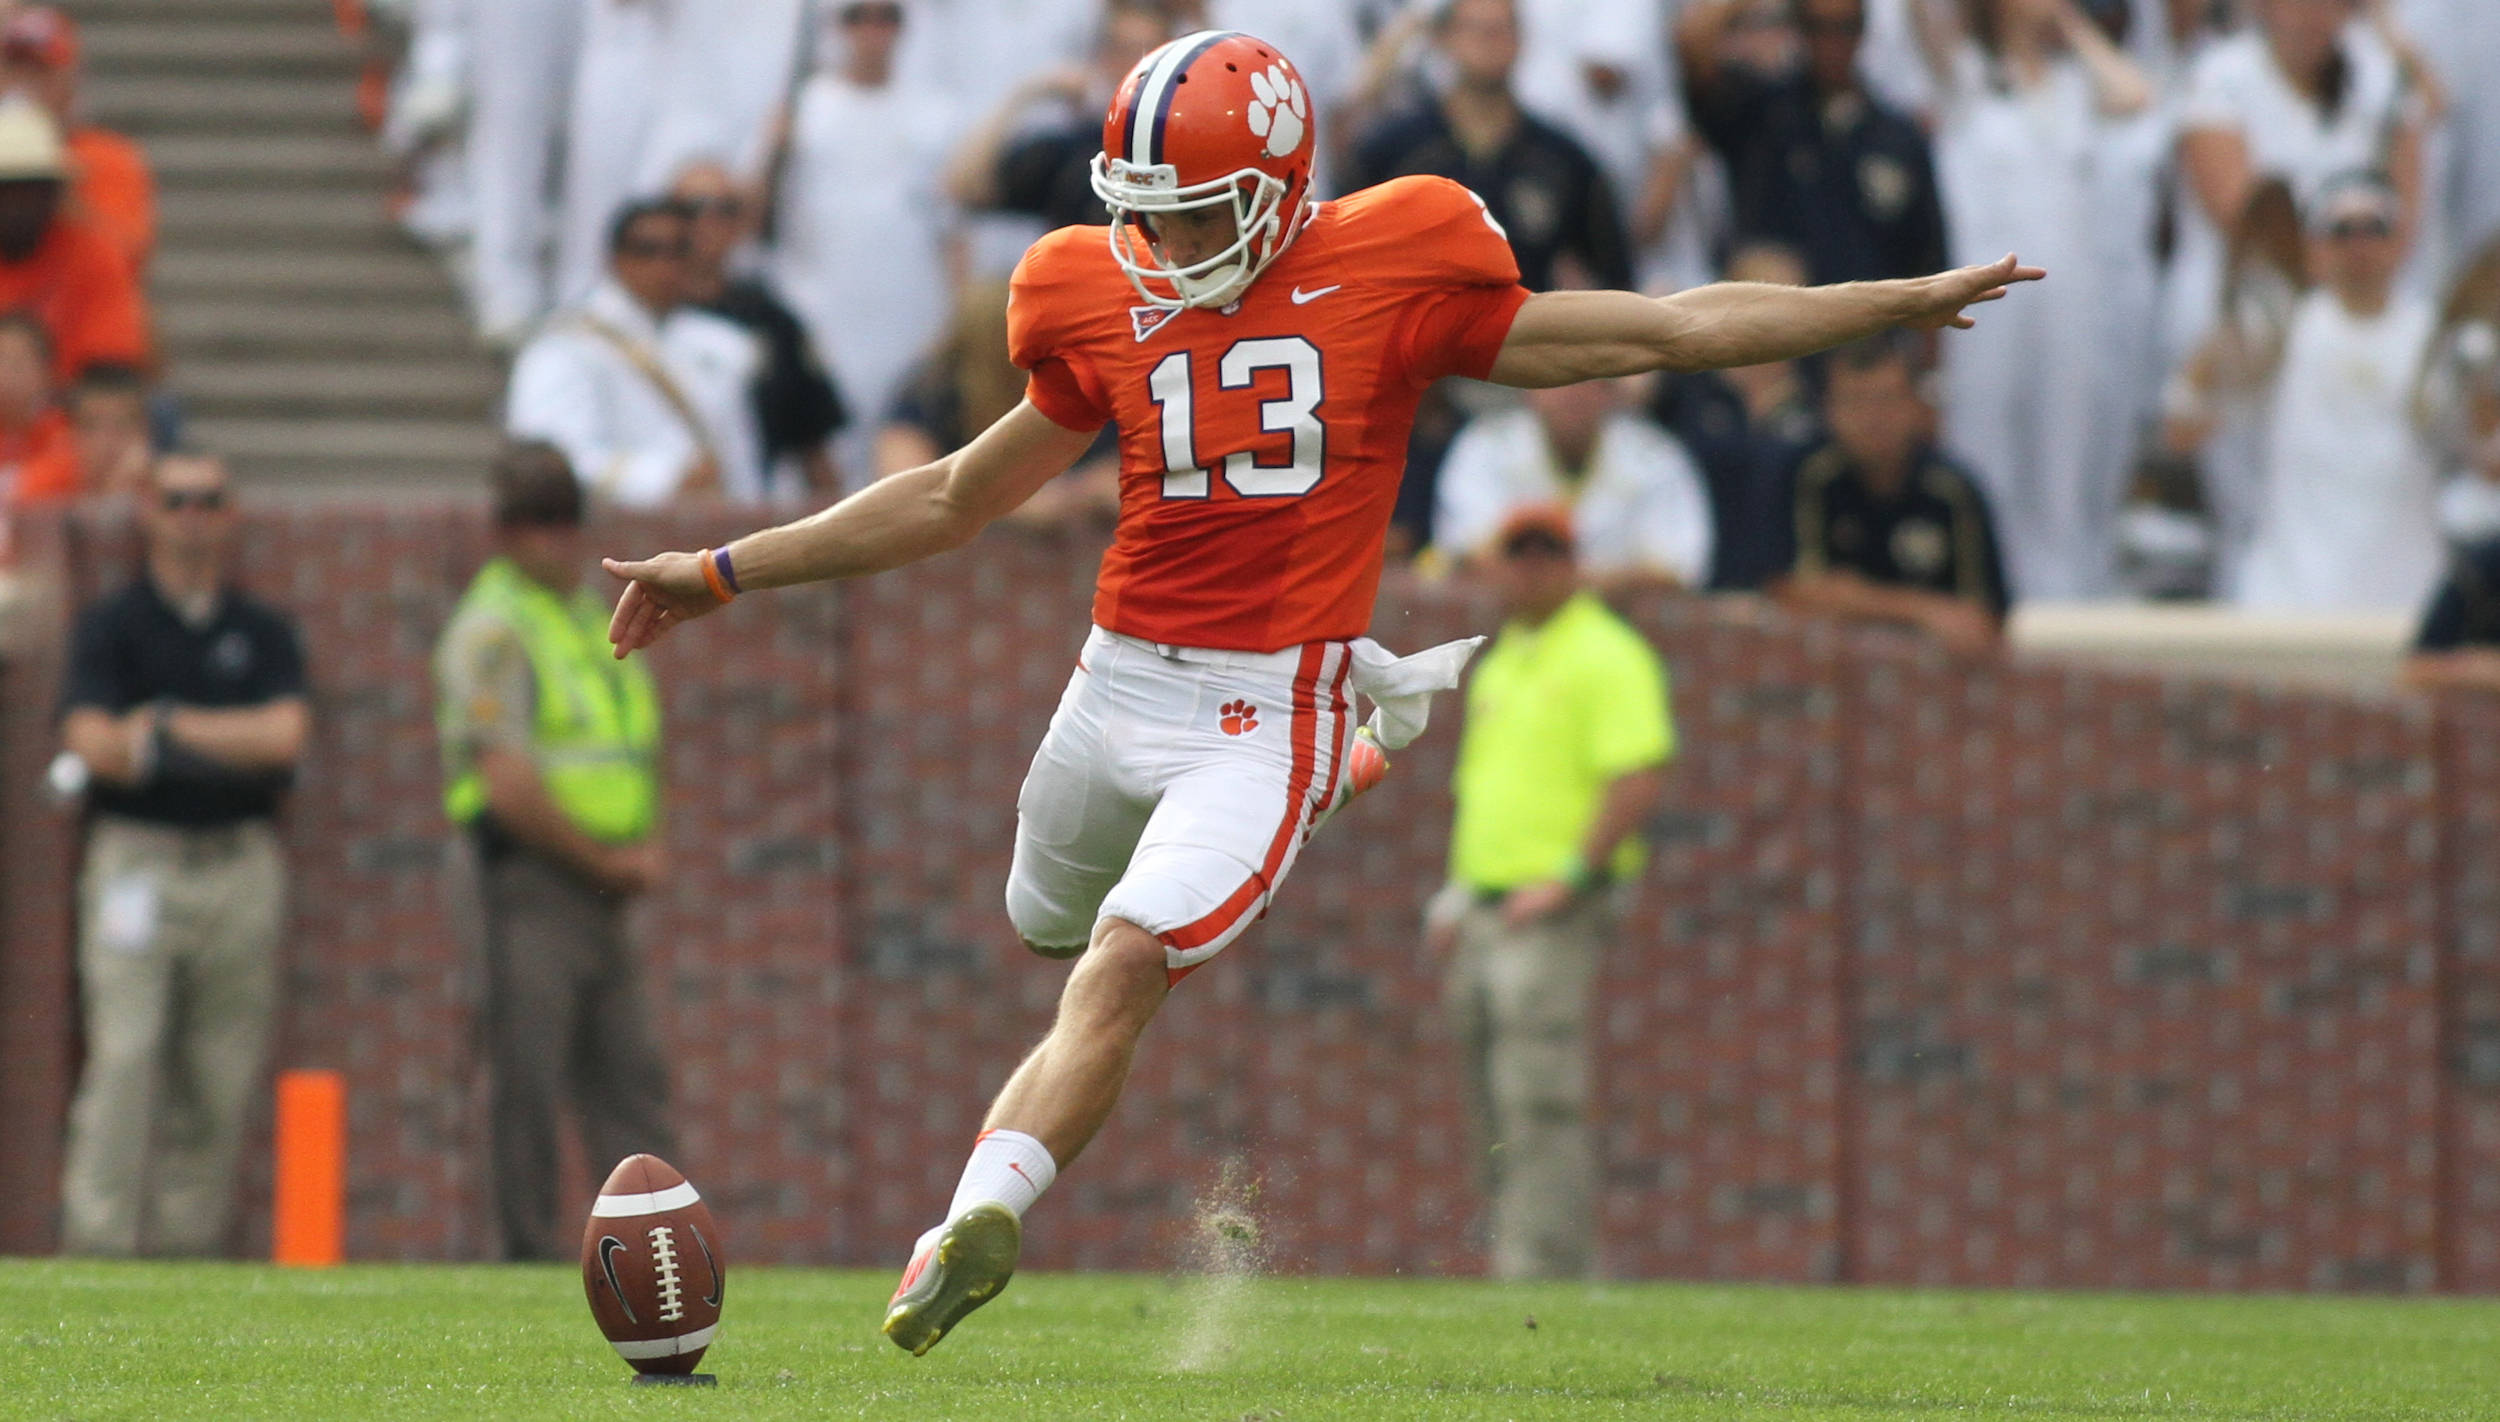 Clemson Football Video Report: On the Road with Spencer Benton